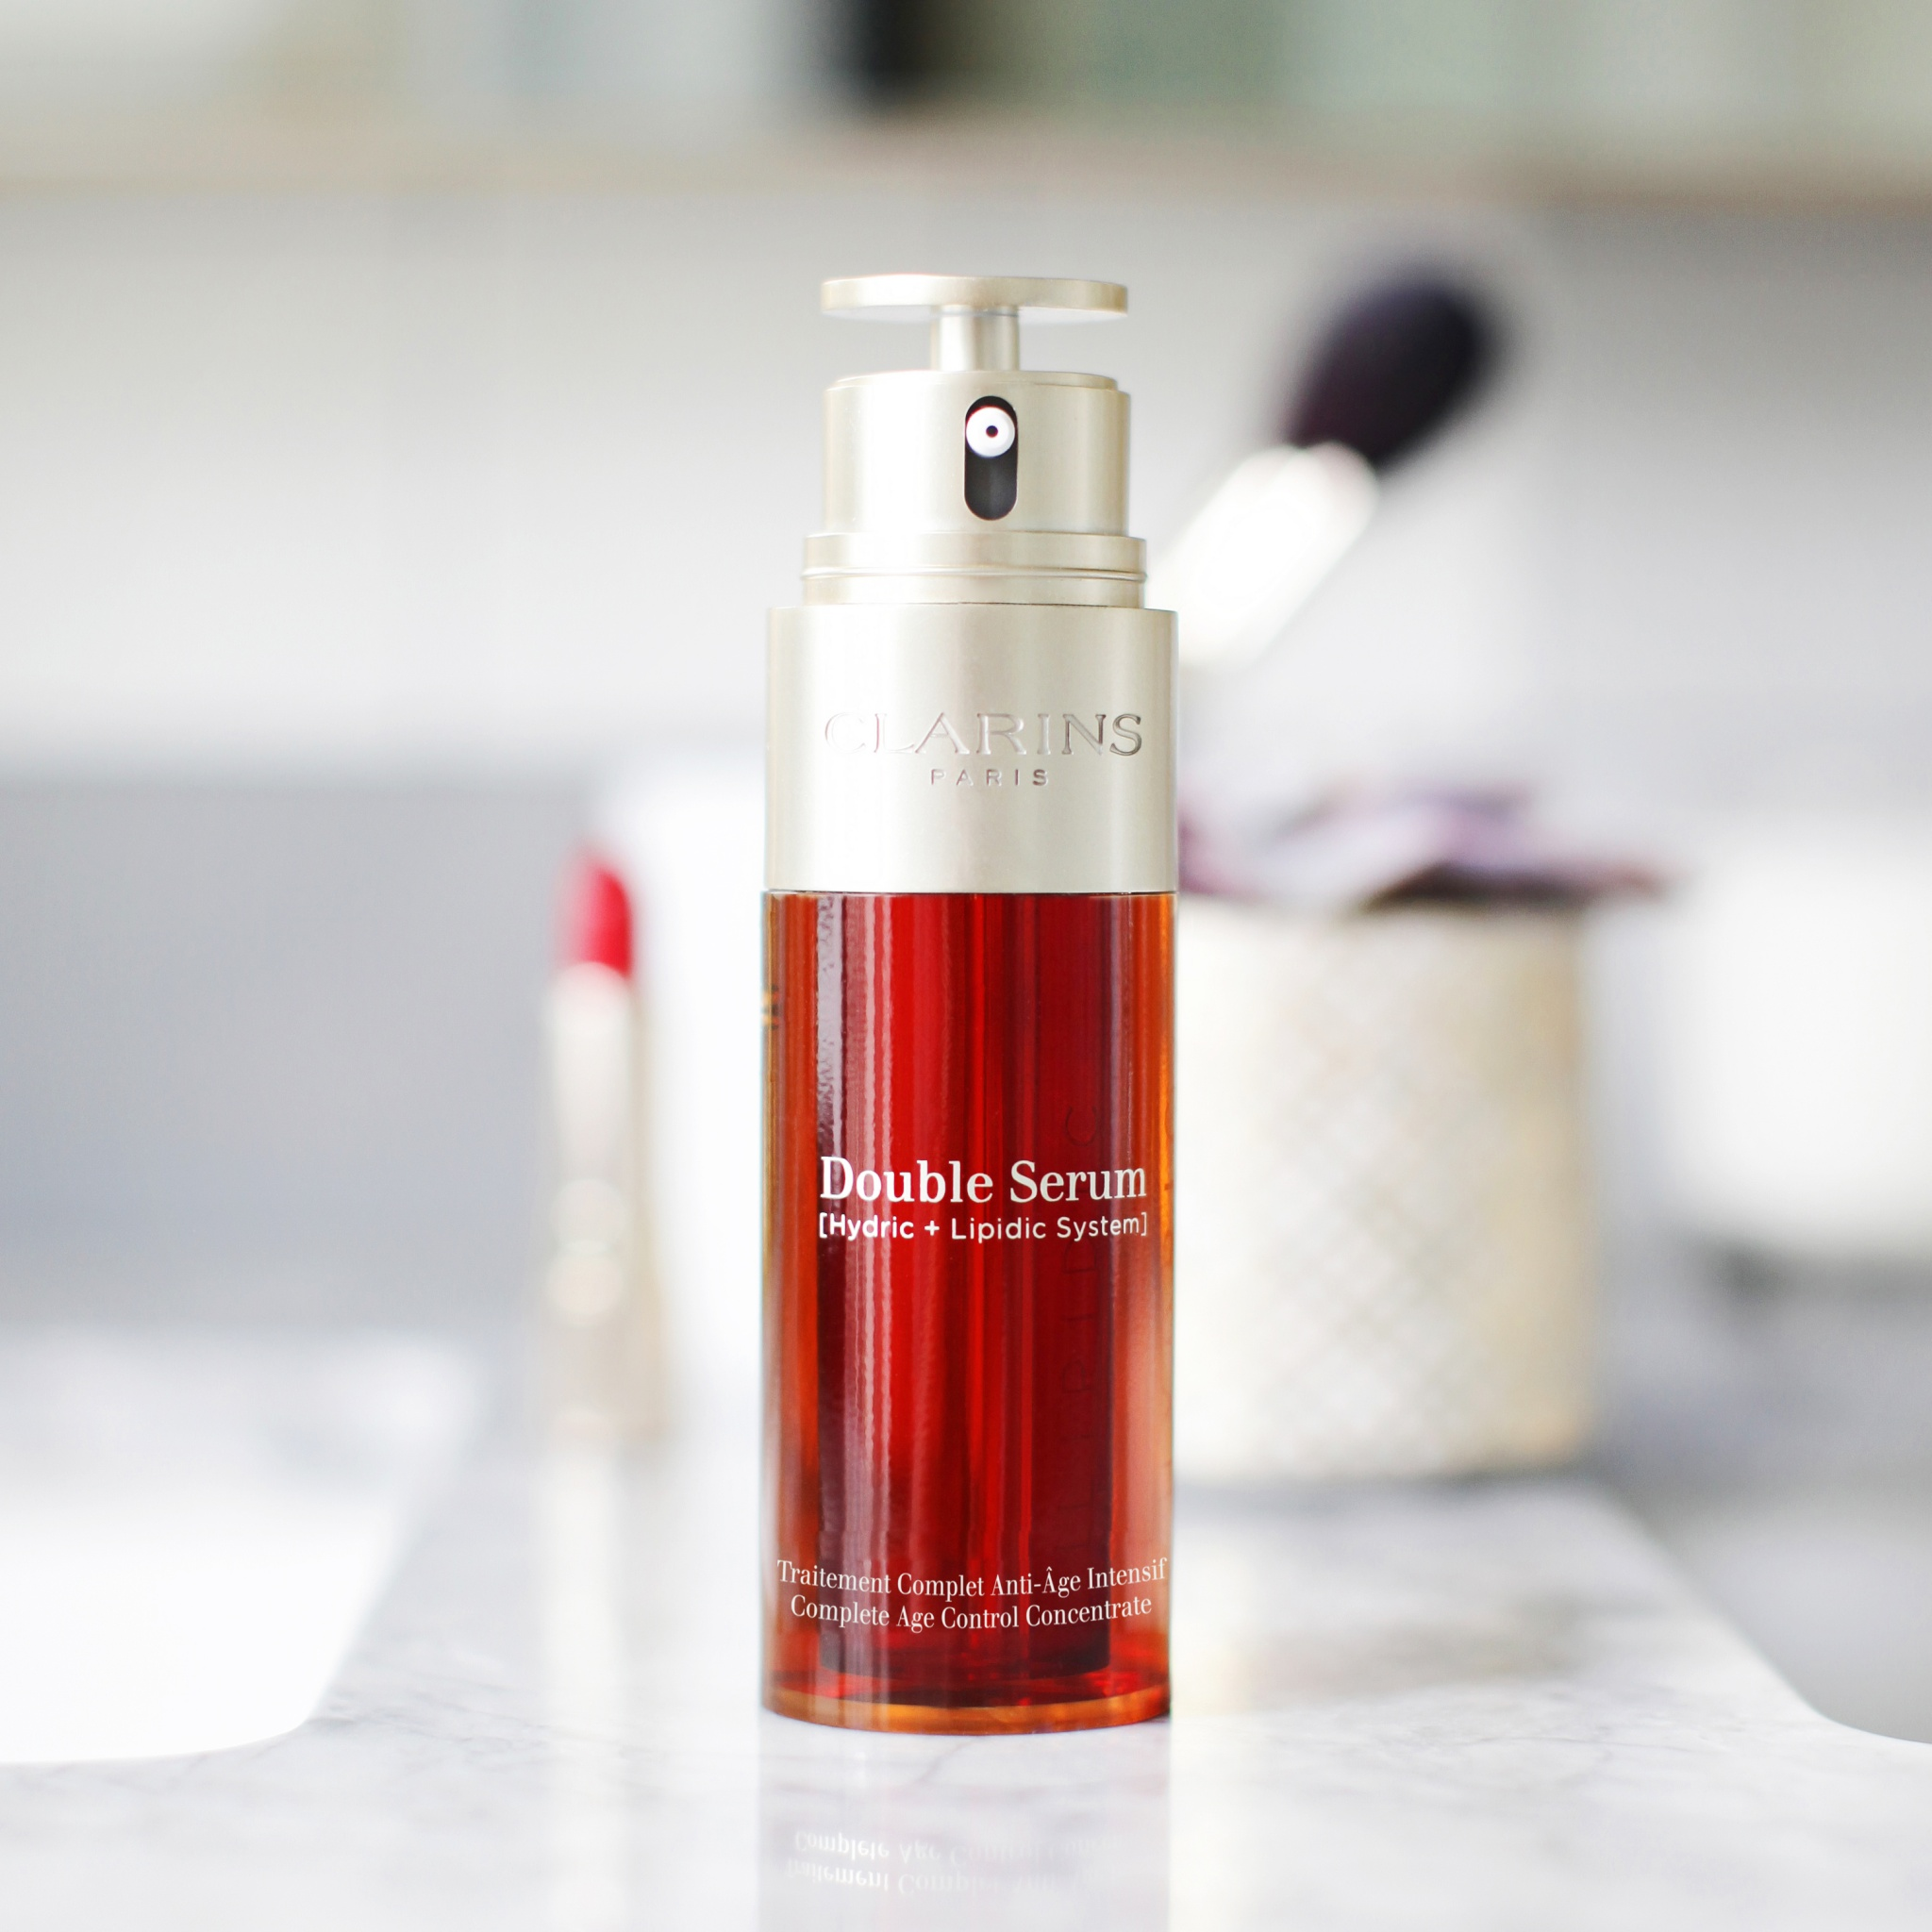 New Double Serum: The 8th Generation Edition